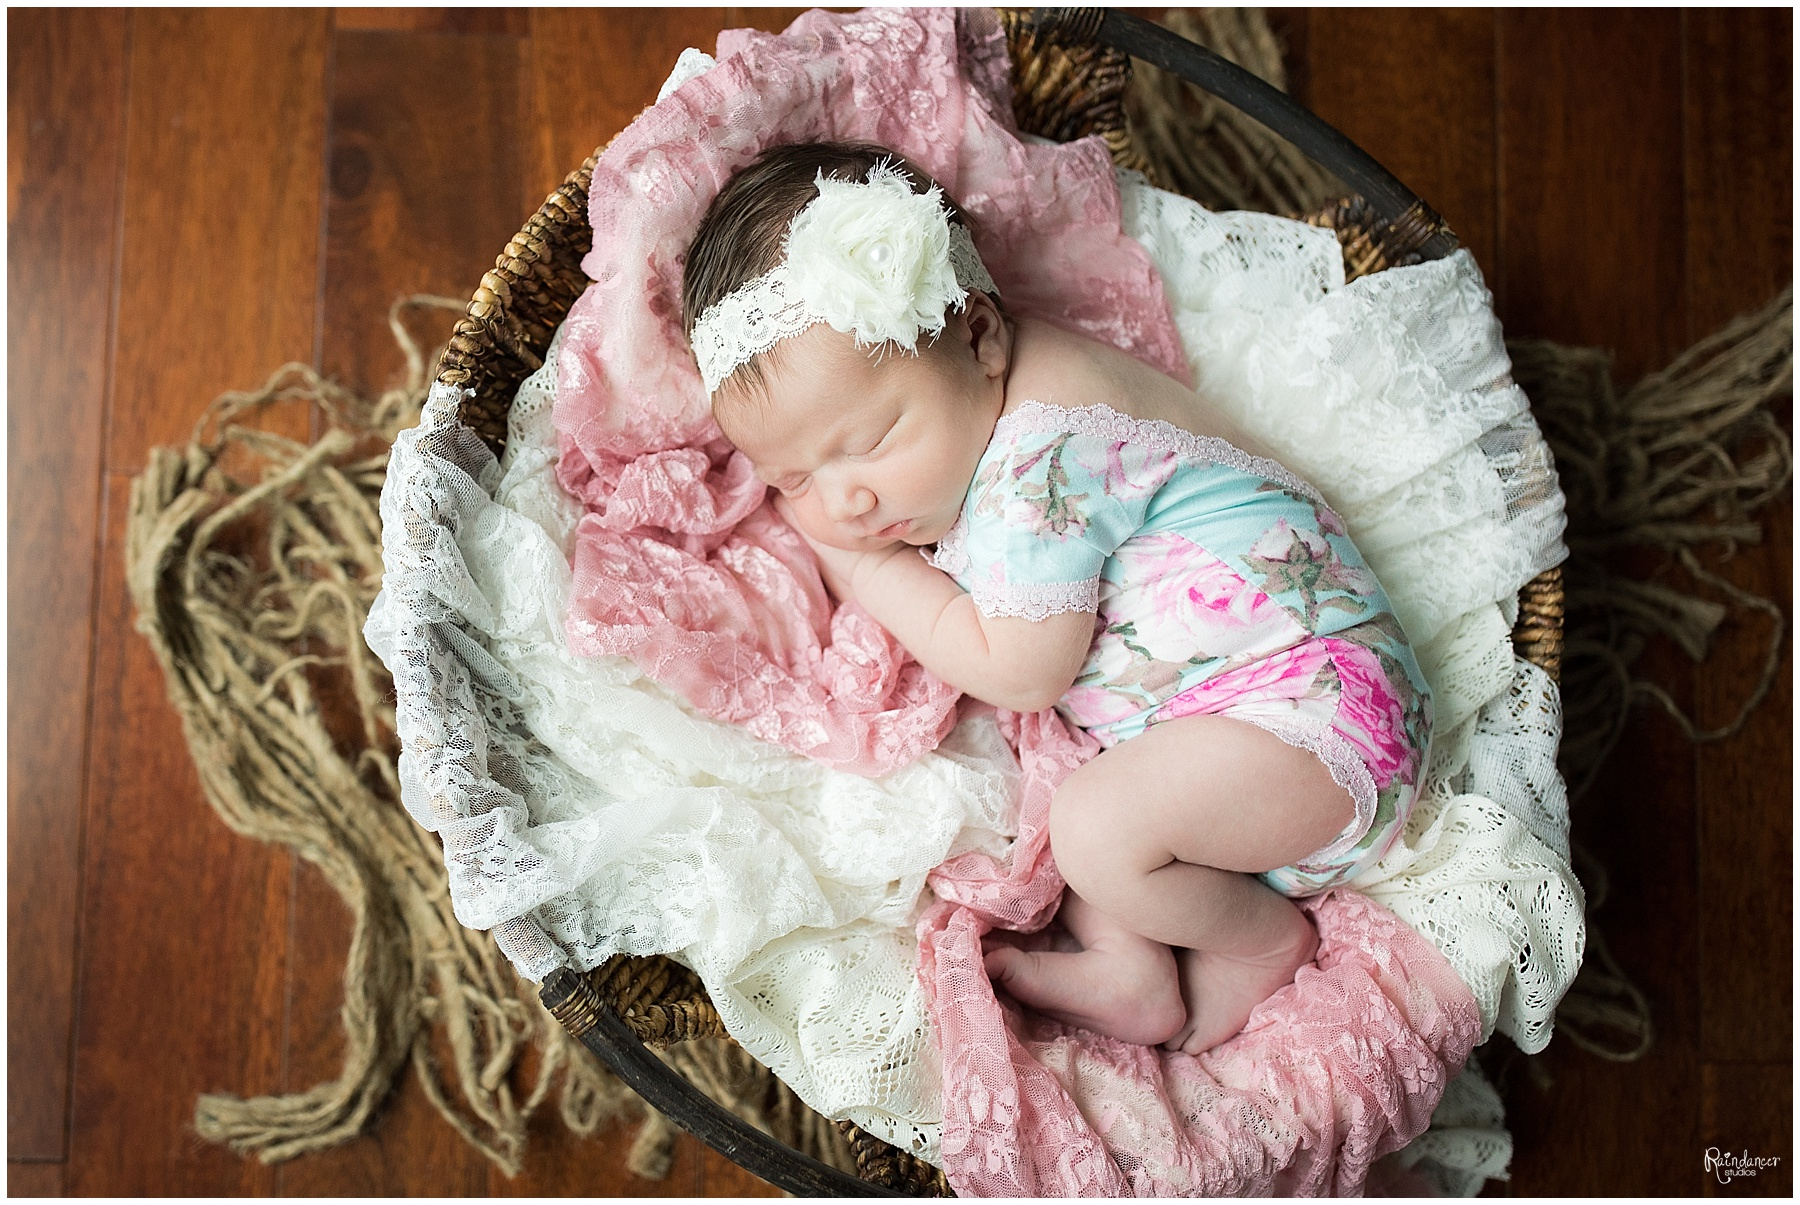 This newborn girl is in a basket with lace and a pretty bow during her newborn session in Indiana.